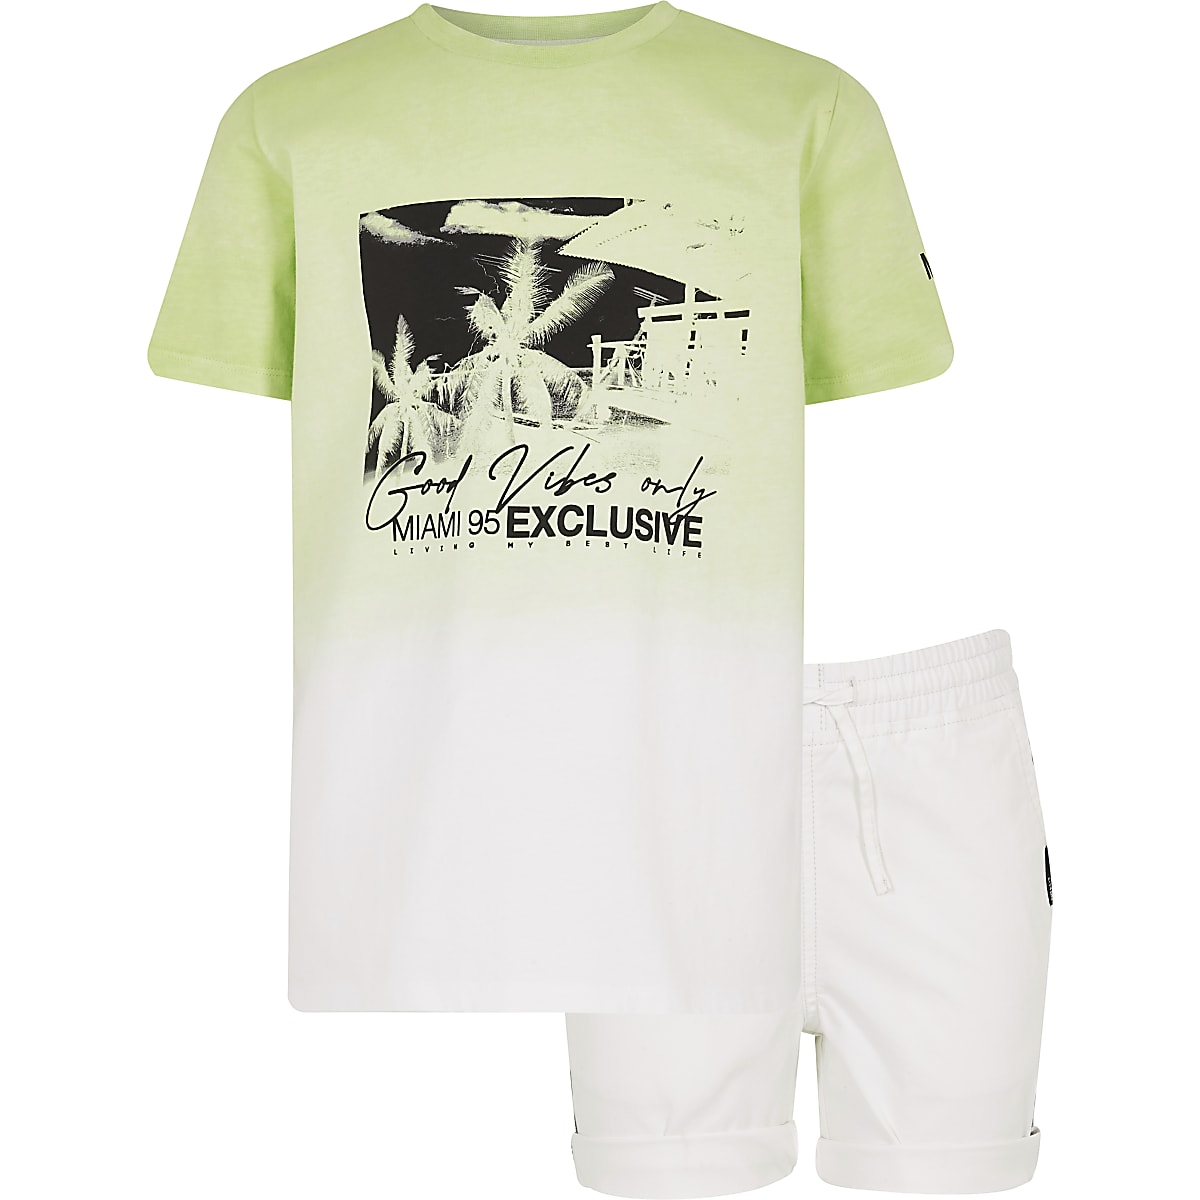 Boys lime green 'good vibes' T-shirt outfit